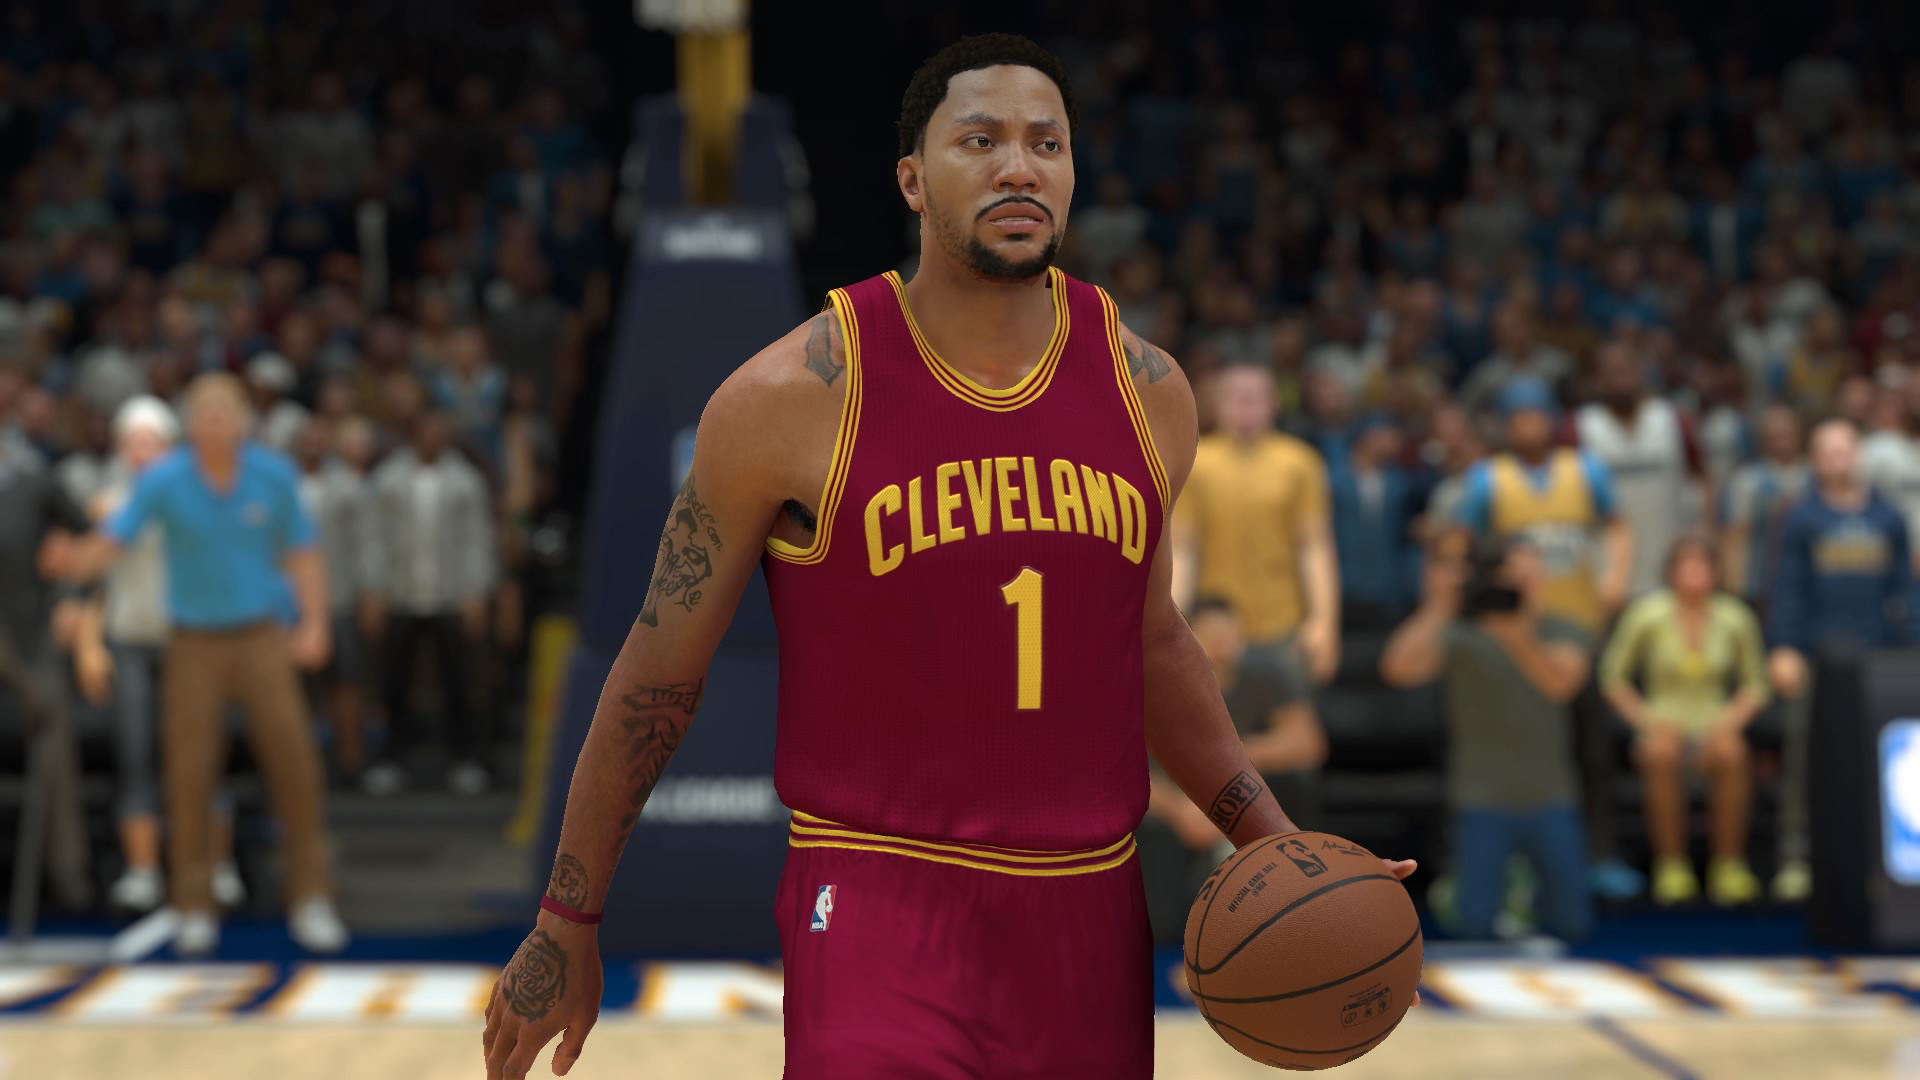 Nba 2k15 Latest Roster Ps4 | Basketball Scores